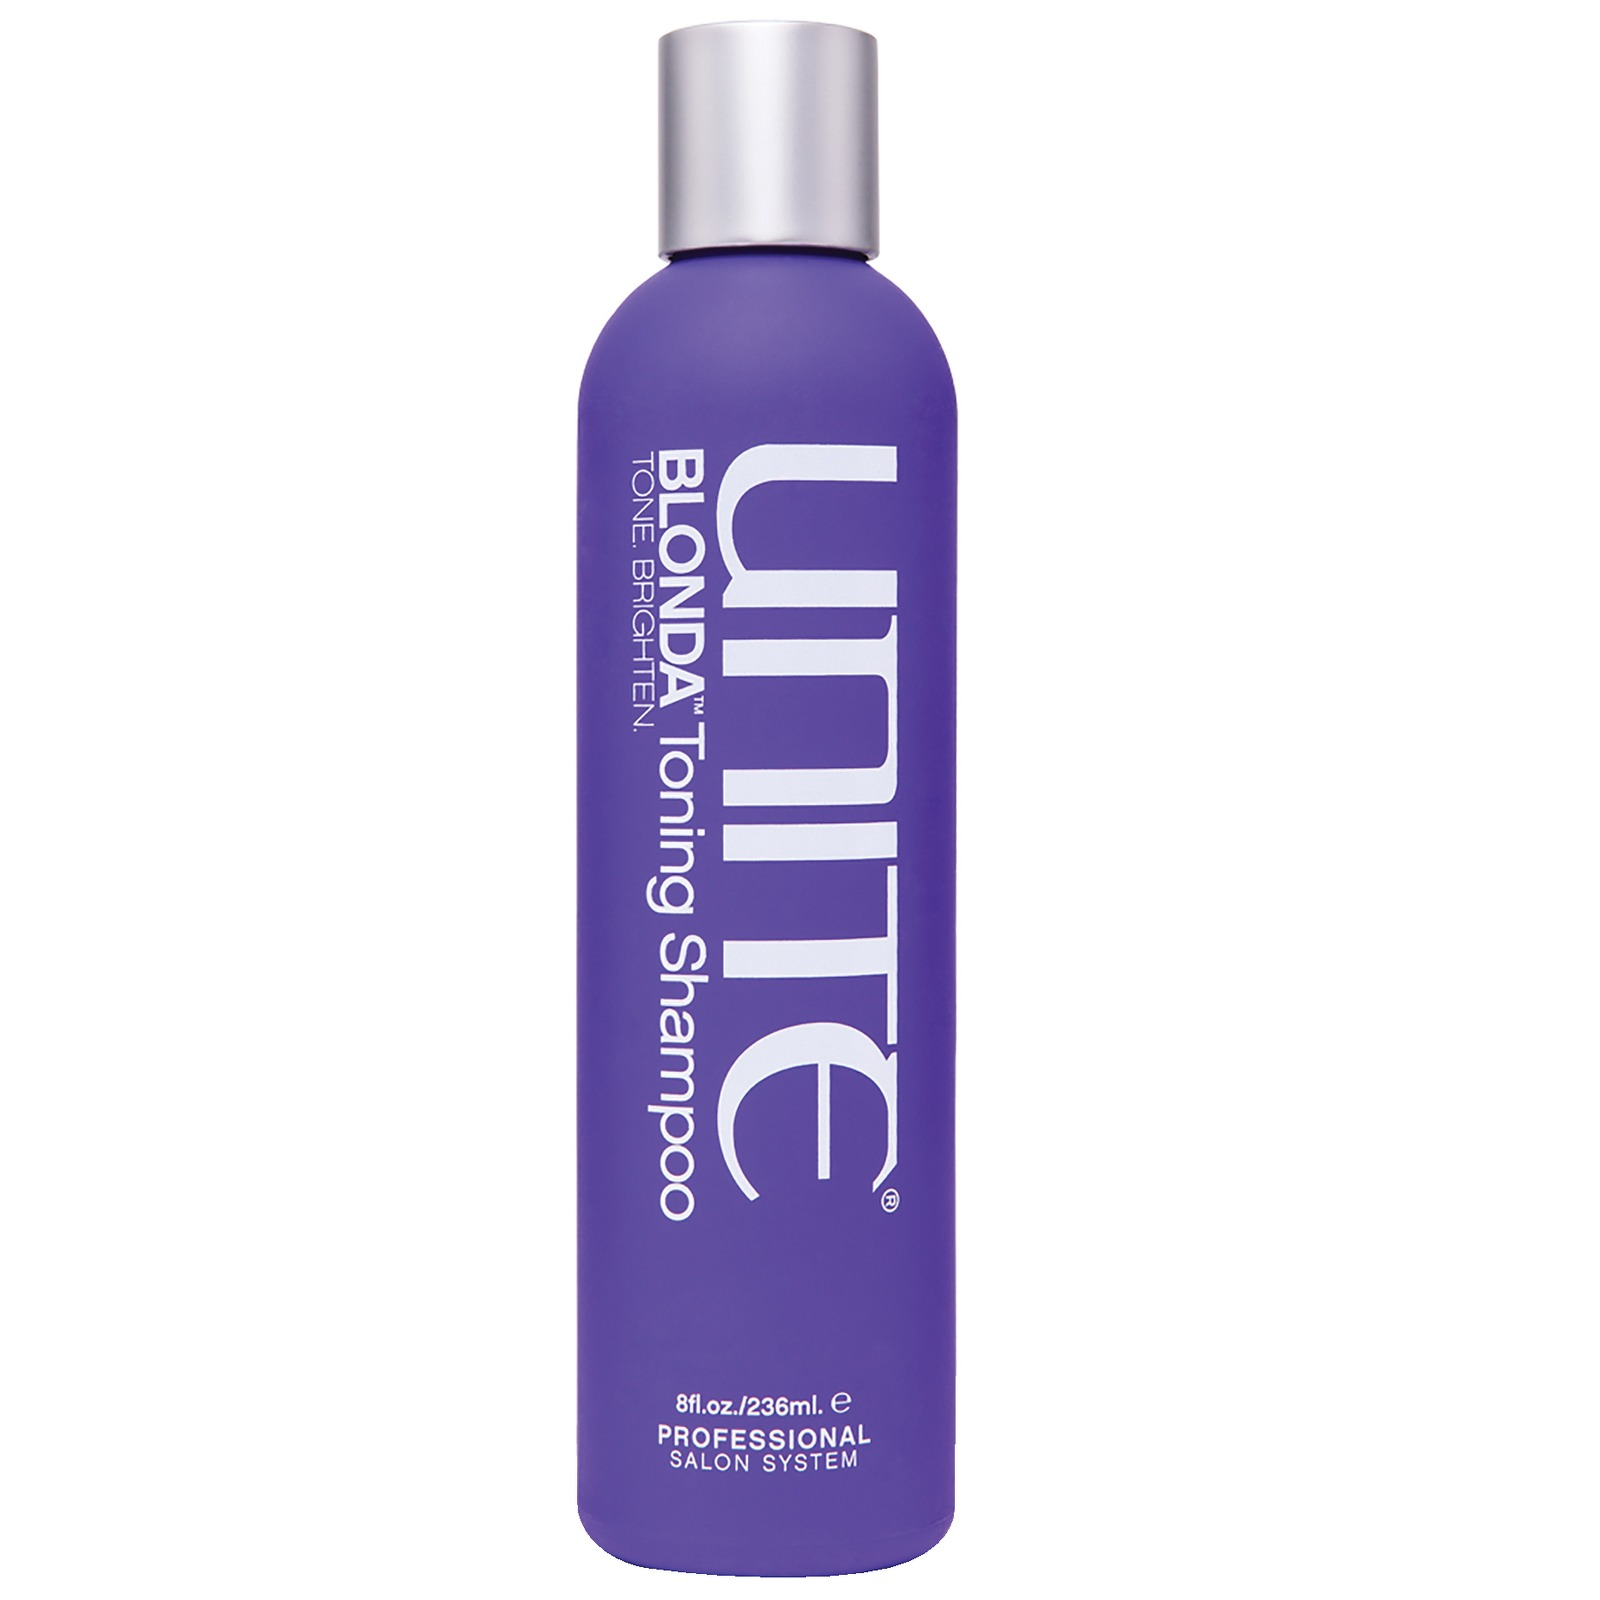 Unite Specialty Blonda tonificante Shampoo ml 236 / 8 FL. oz